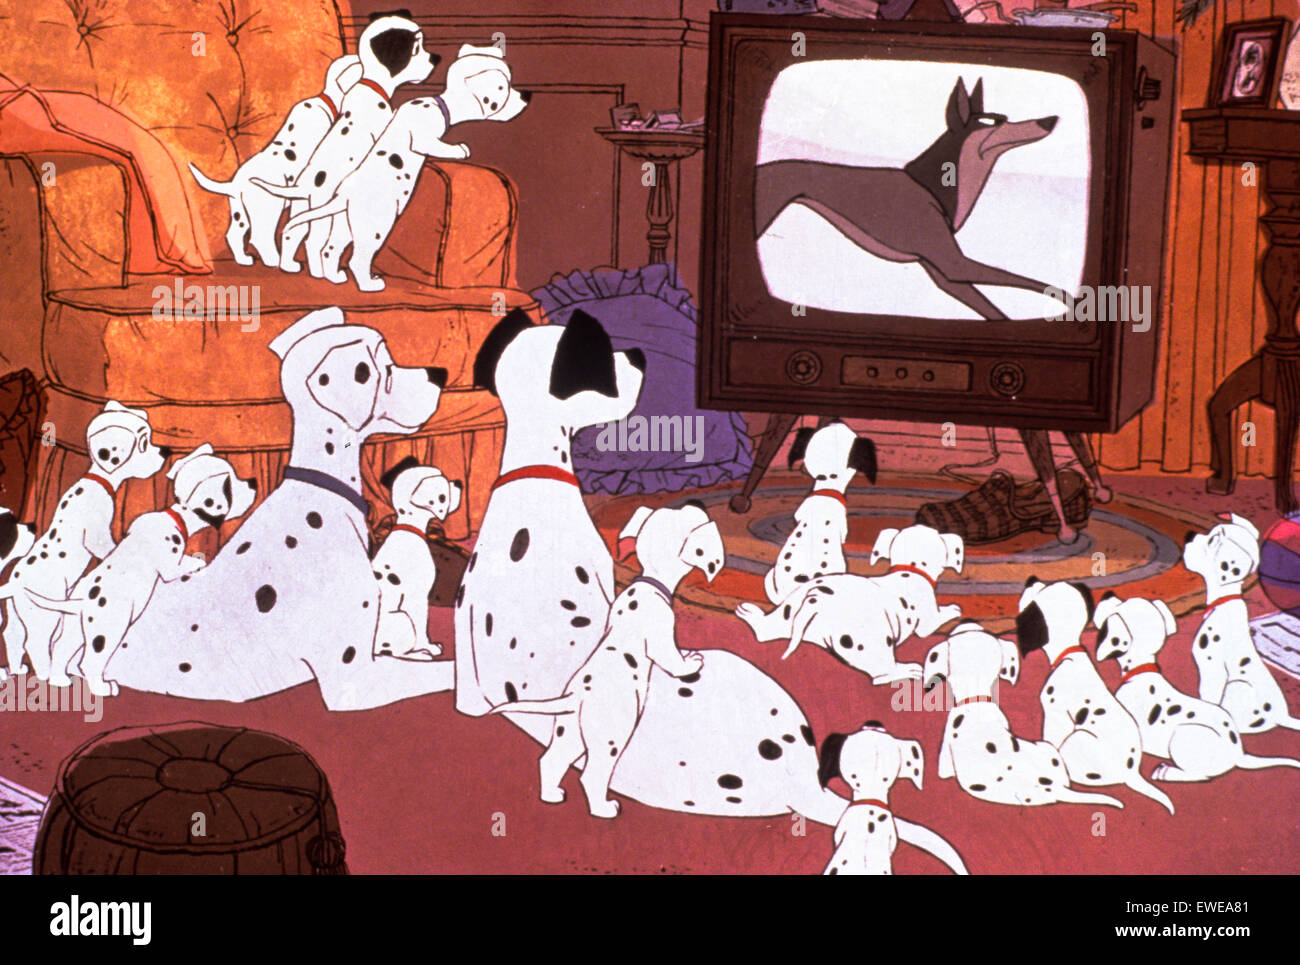 One Hundred and One Dalmatians - Stock Image